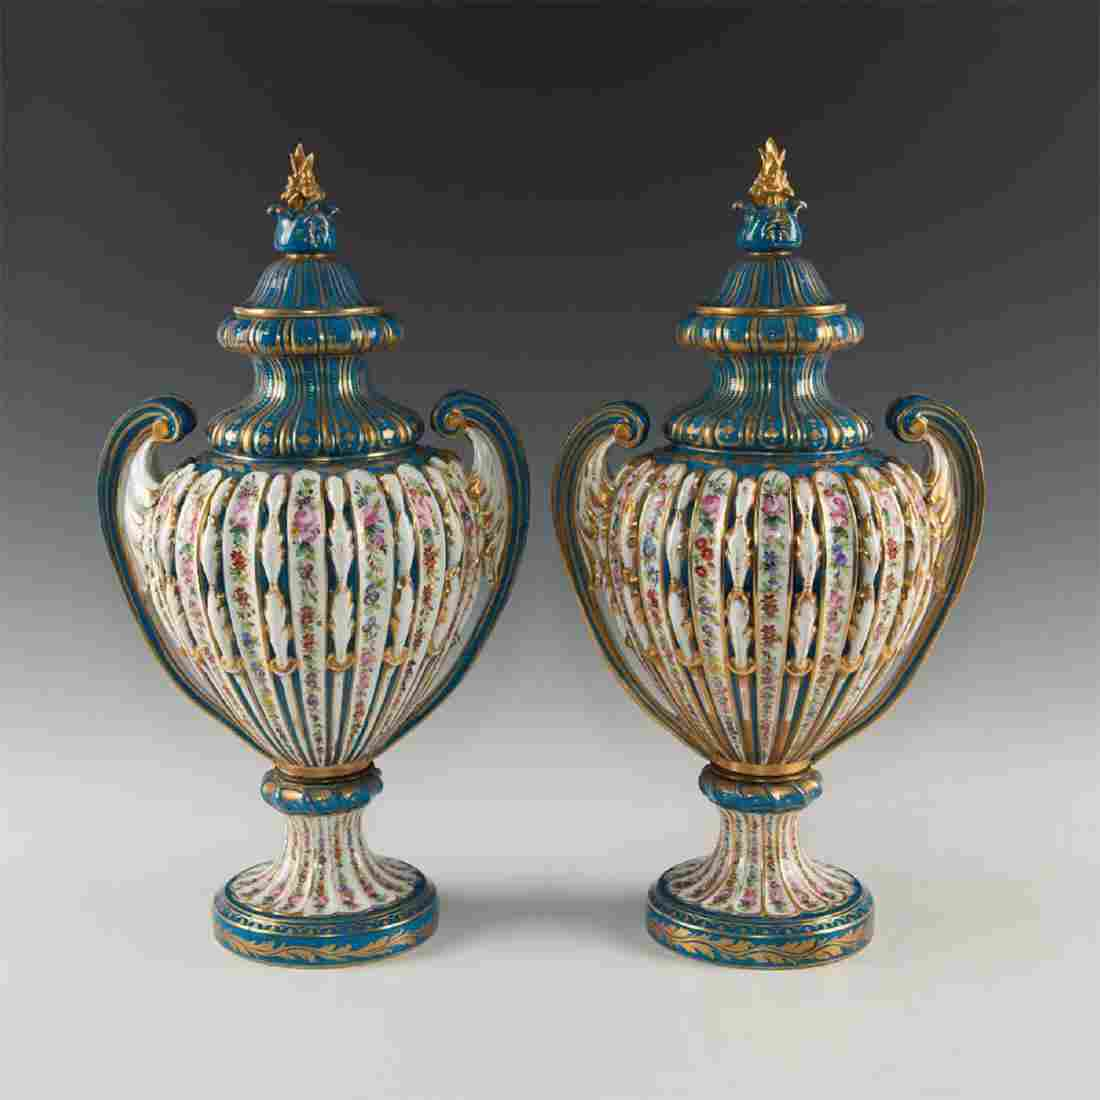 IMPORTANT PAIR OF COVERED VASES ATTRIBUTED TO CATHERINE